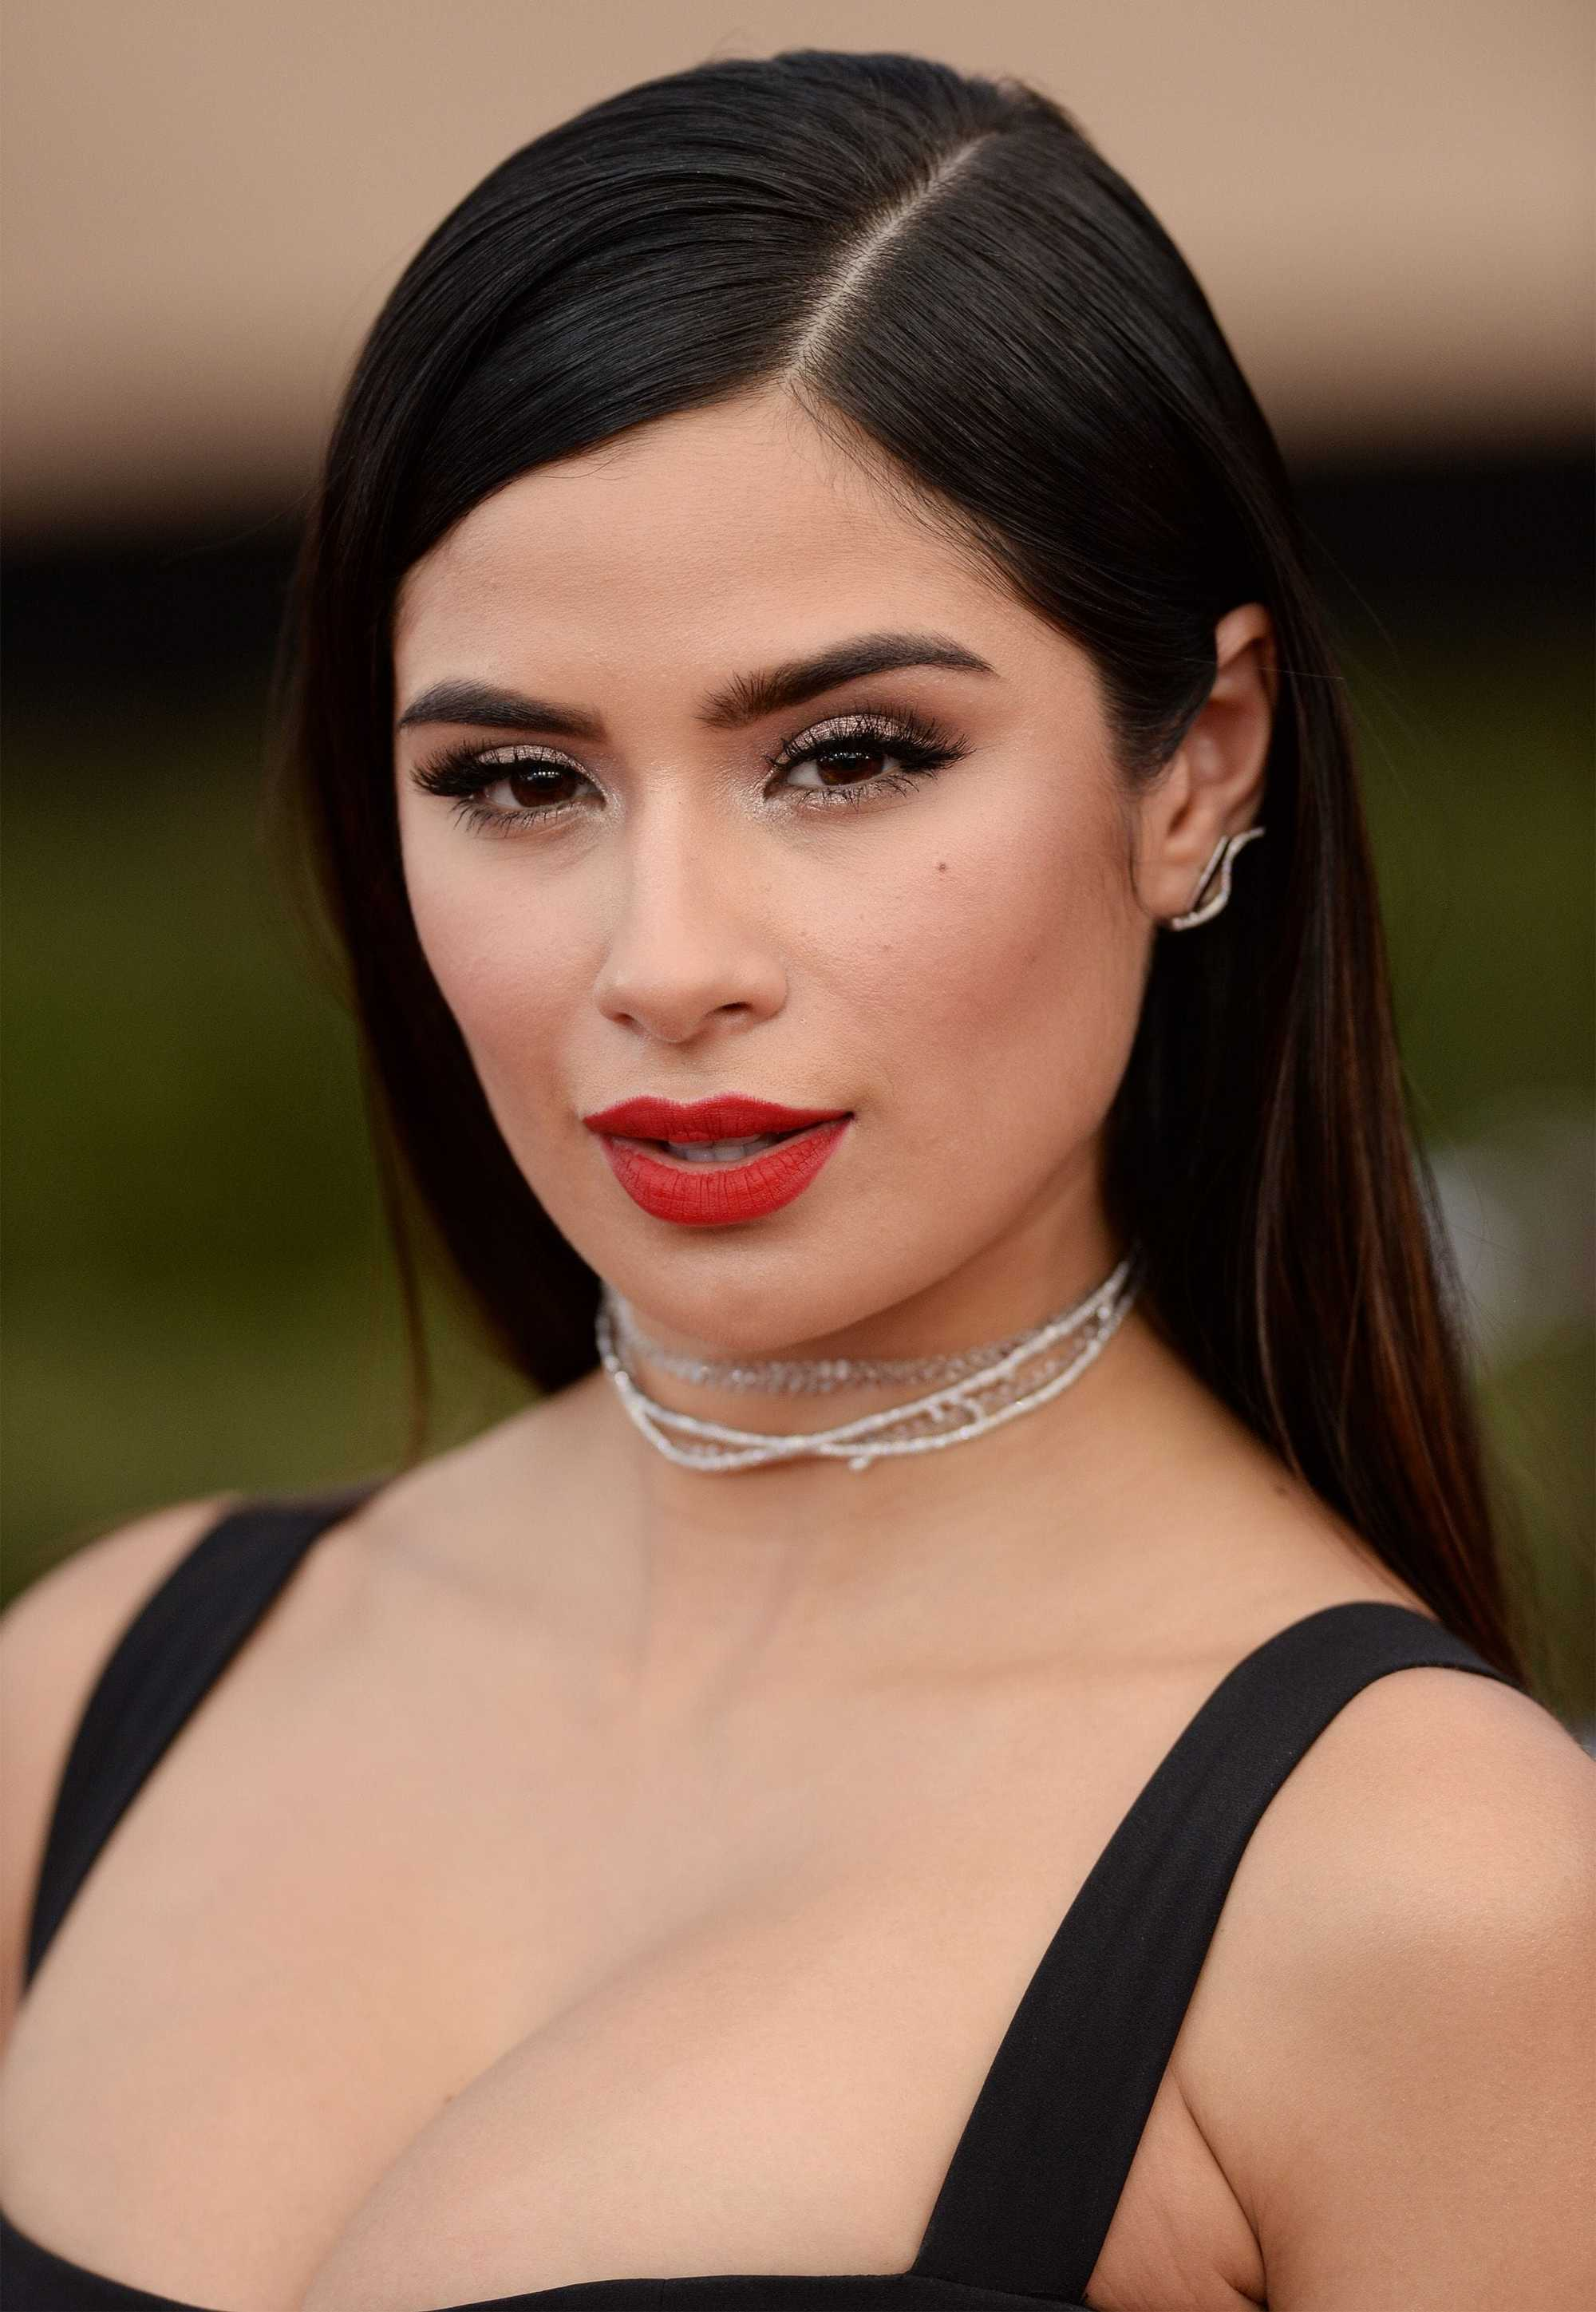 Sexy hairstyles for long hair: Diane Guerrero straight and sleek long brown hair